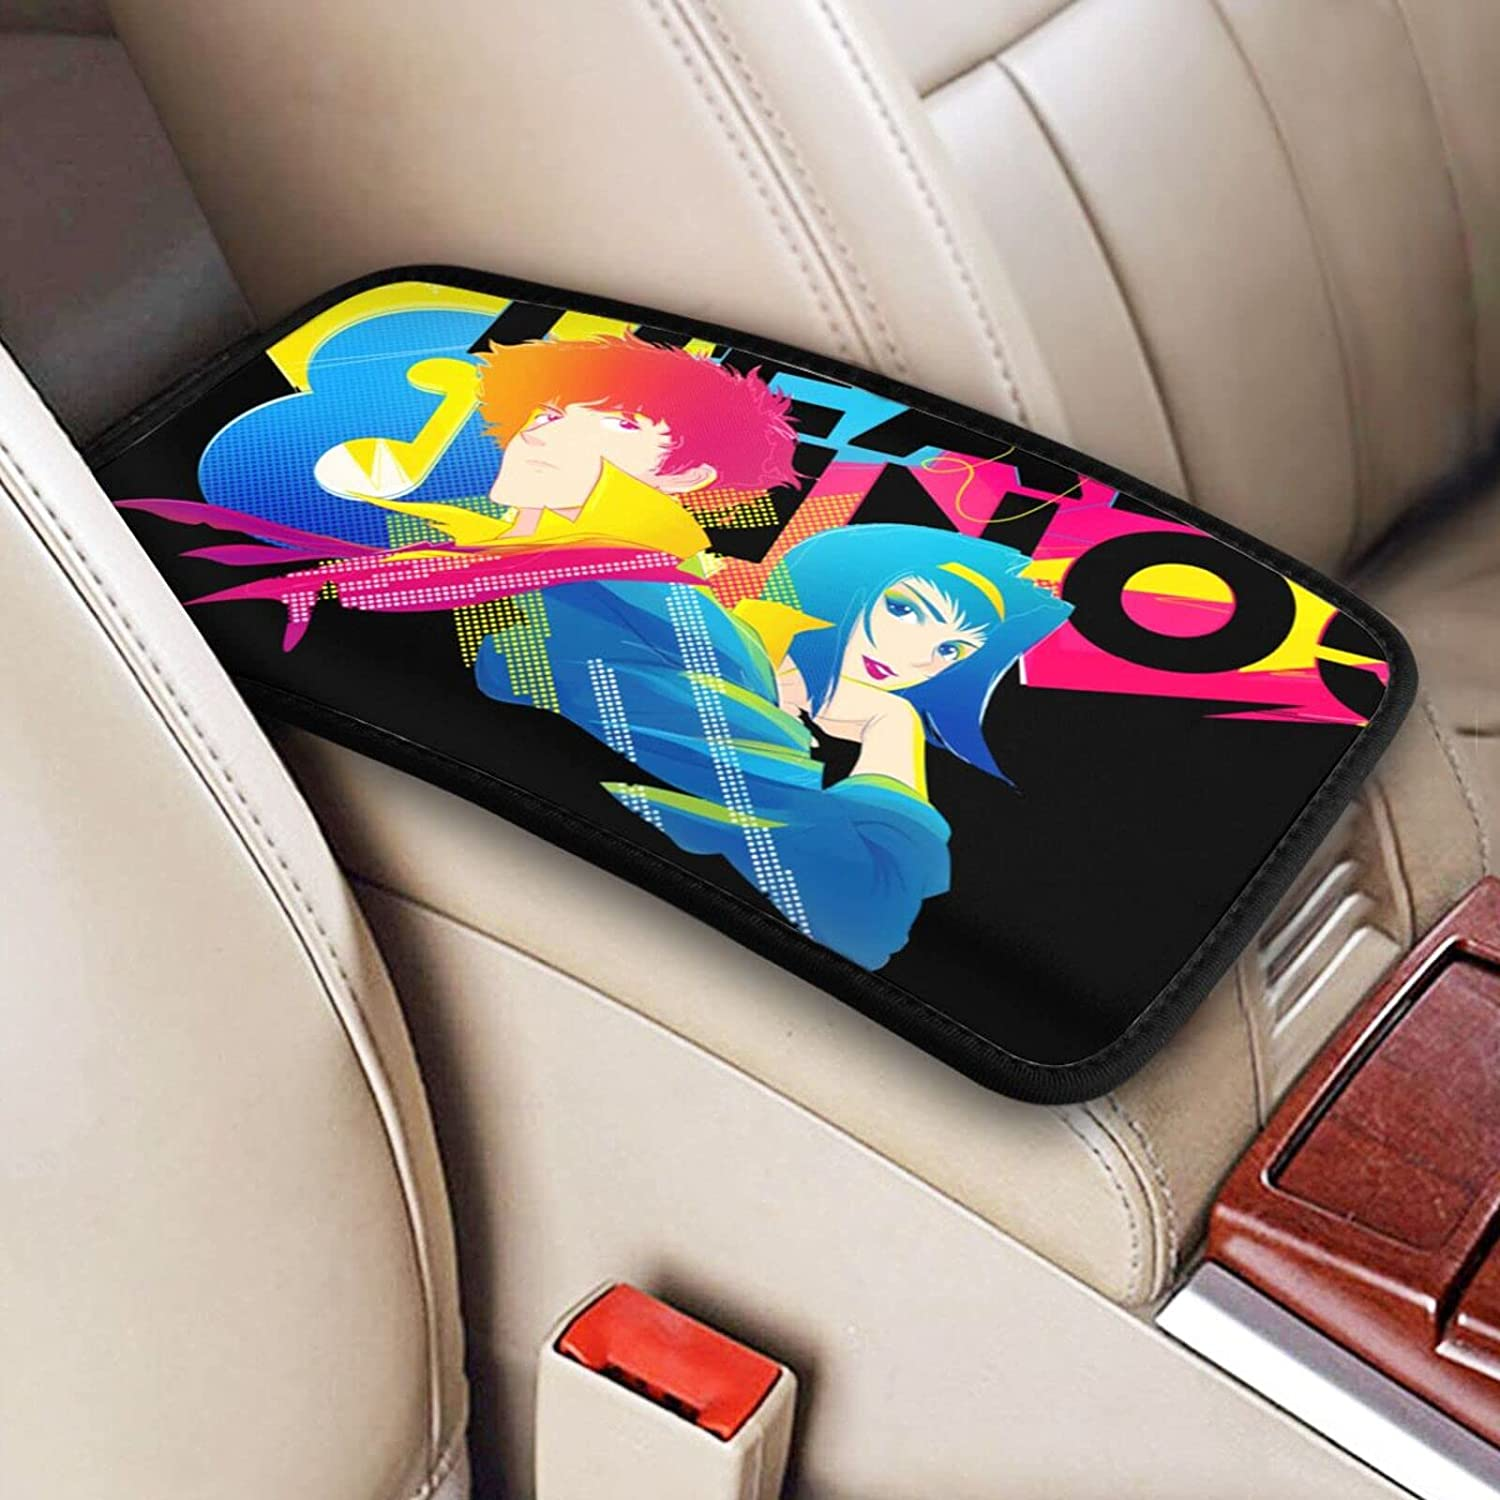 Cowboy Bebop Anime Auto Center Console Cover Armrest Pad Soldering Spike S Mail order cheap